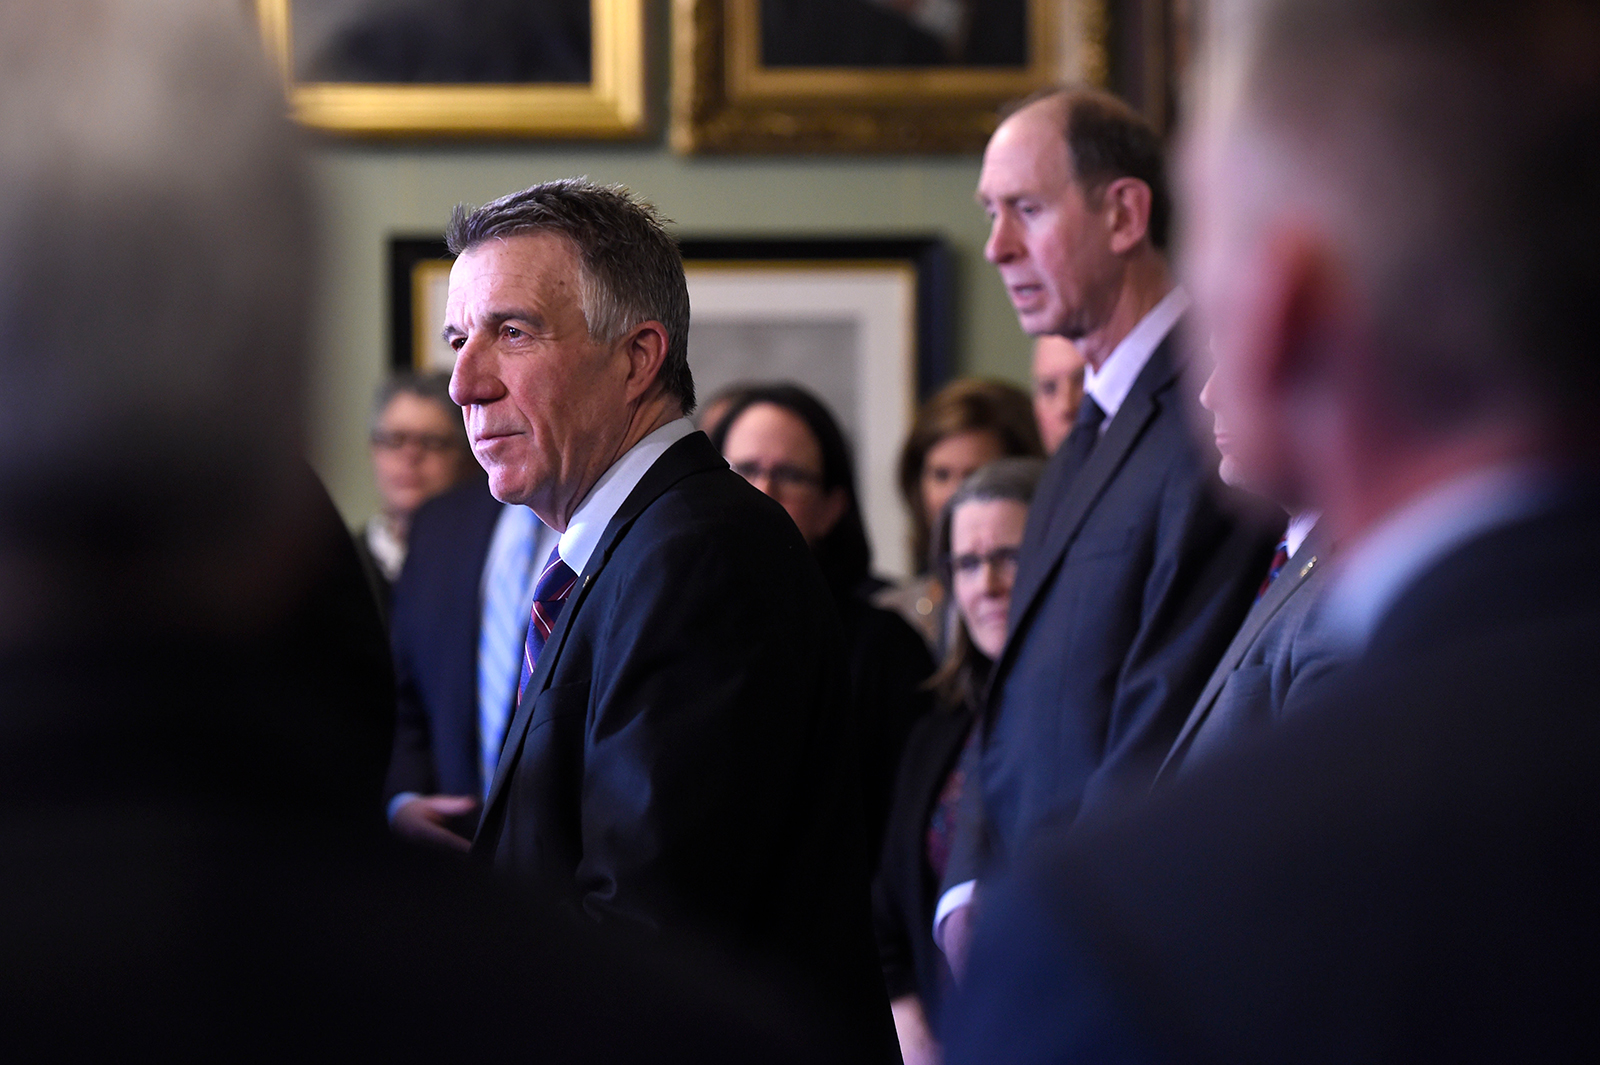 Vermont Gov. Phil Scott speaks during a press conference in Montpelier, Vermont, on March 13.